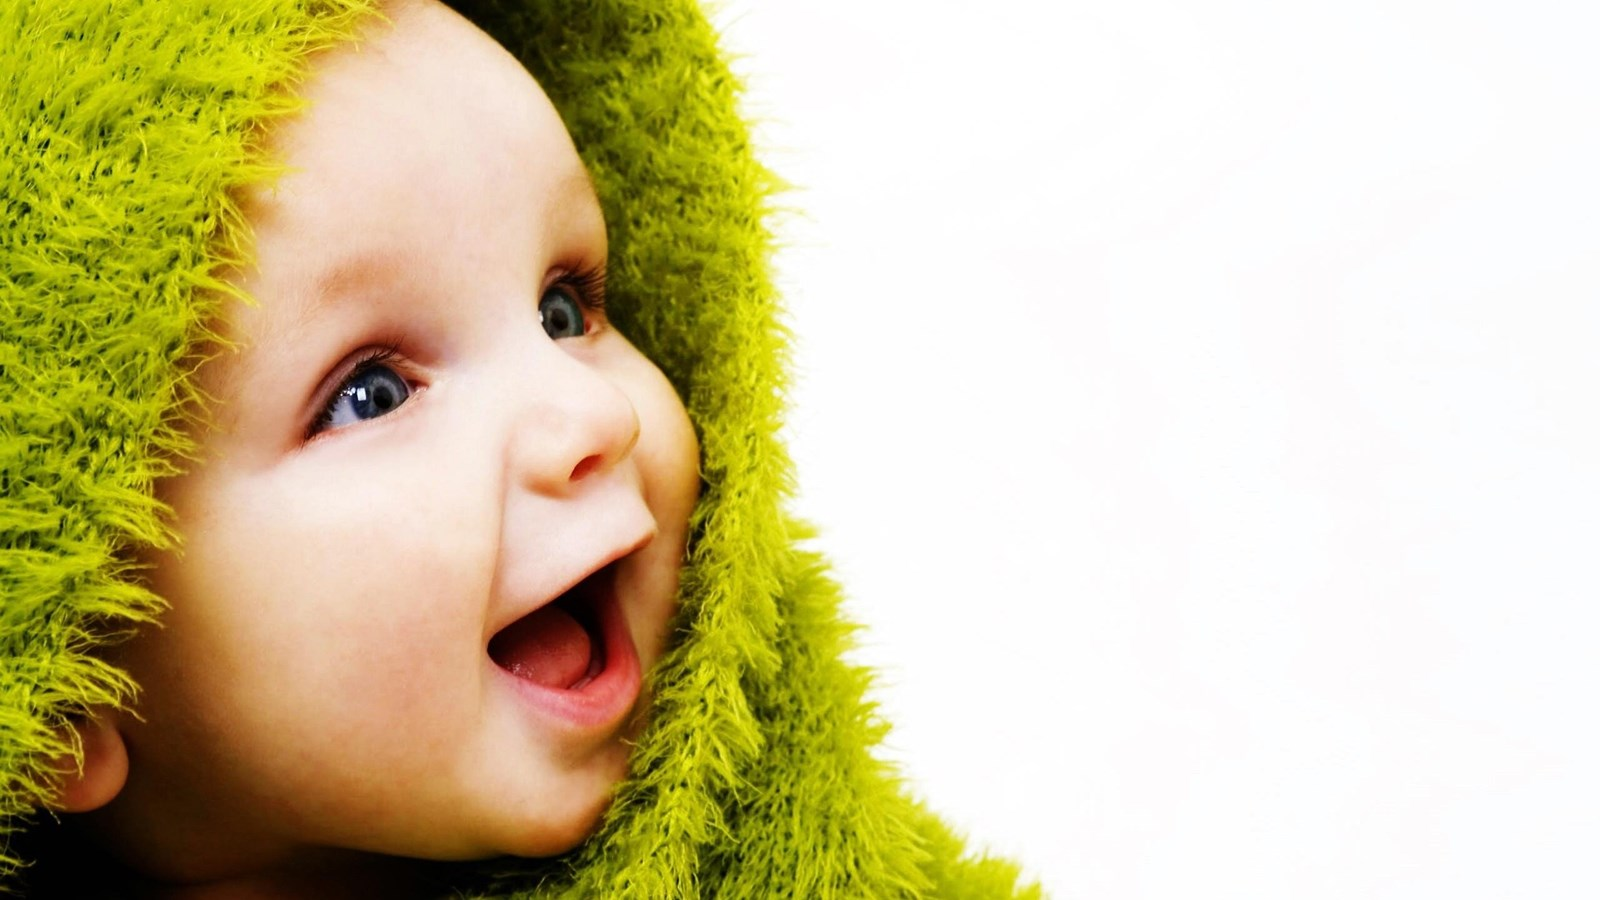 Little Cute Baby Boy Full Hd Large Widescreen Wallpapers Large